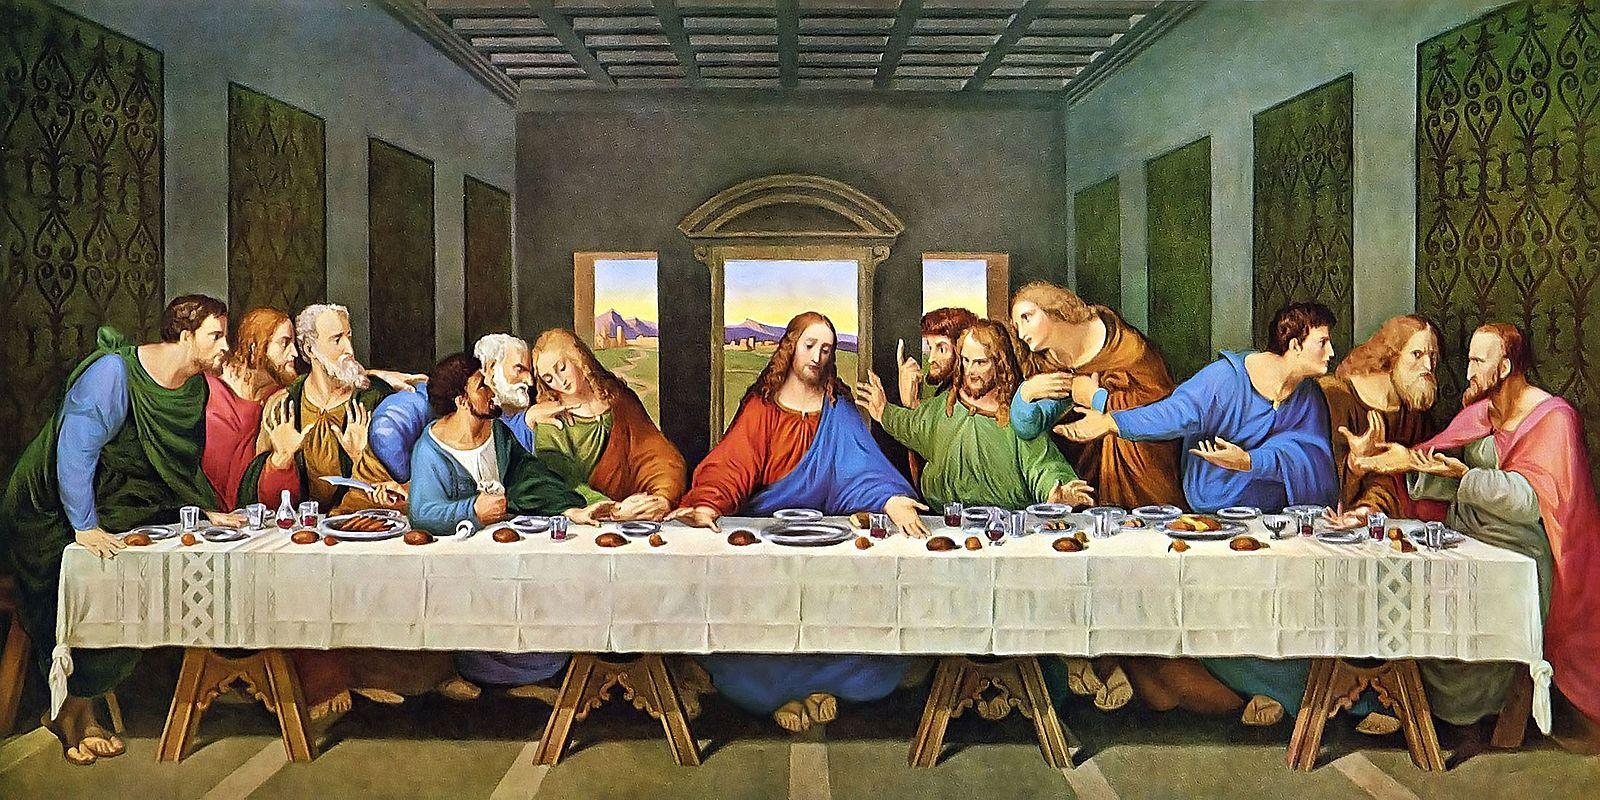 The Last Supper by Leonardo da Vinci. (Image: Wikimedia / CC0 1.0)